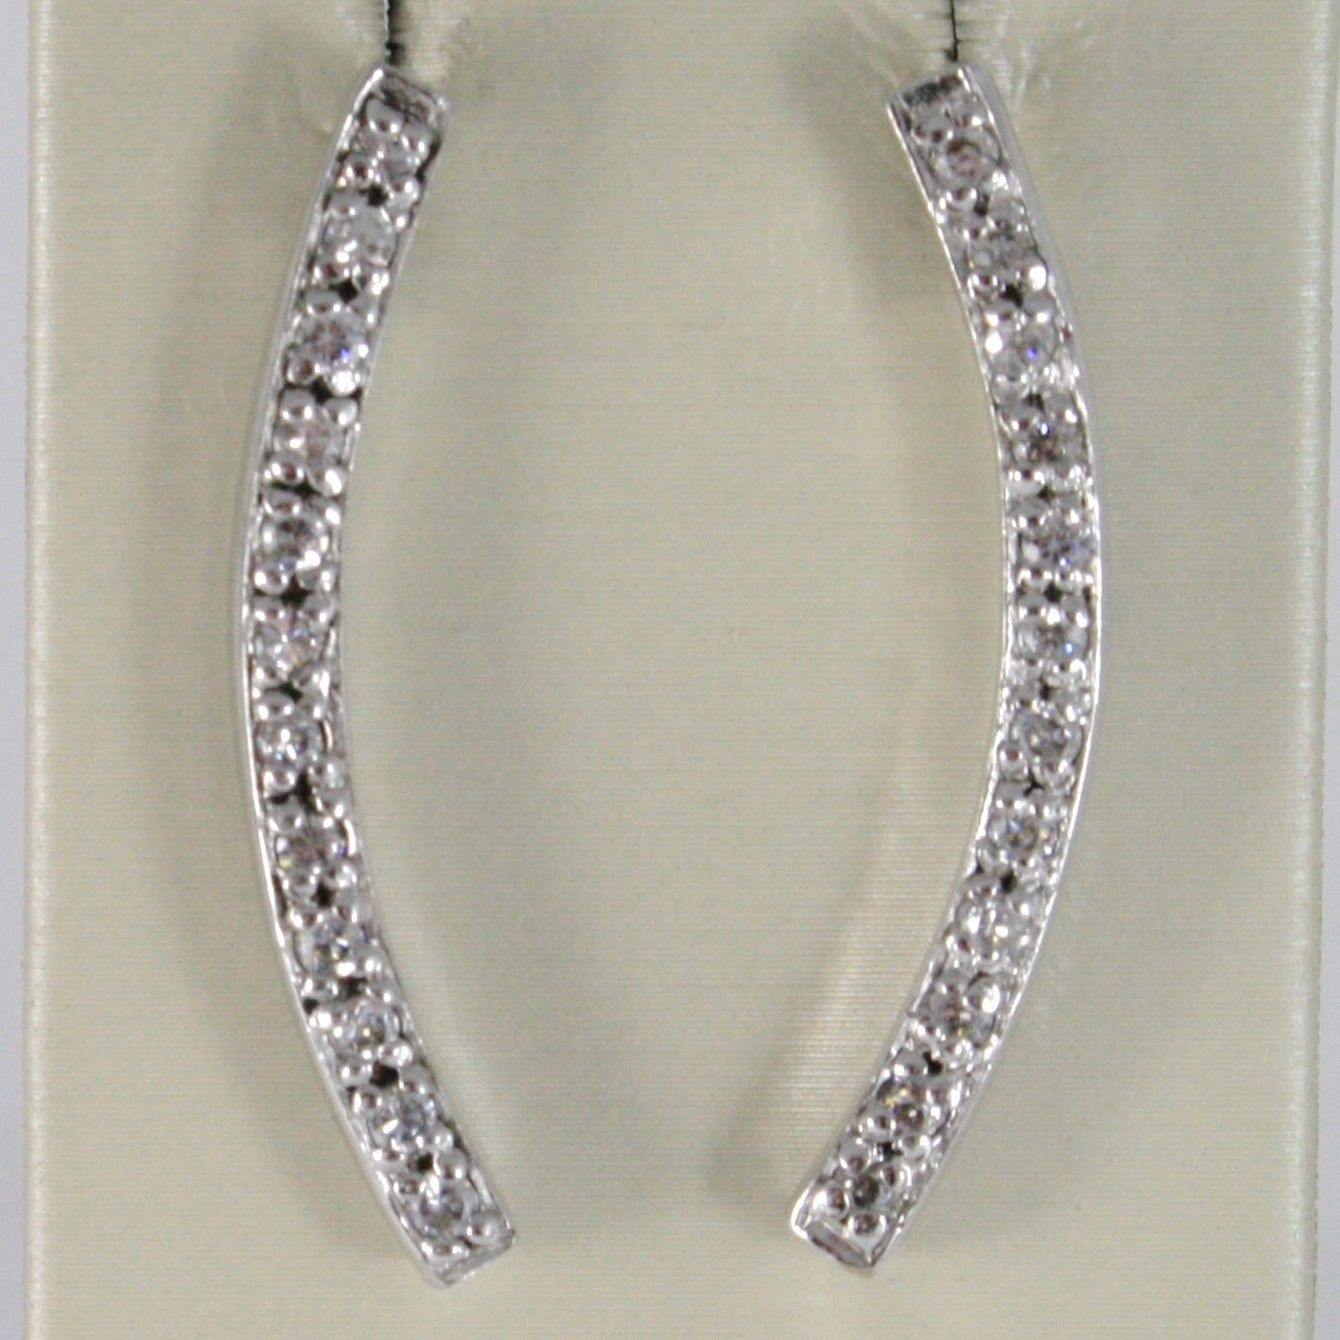 EARRINGS SILVER 925 TRIED AND TESTED WITH BAR LINE RIGID WITH ZIRCON CUBIC WHITE